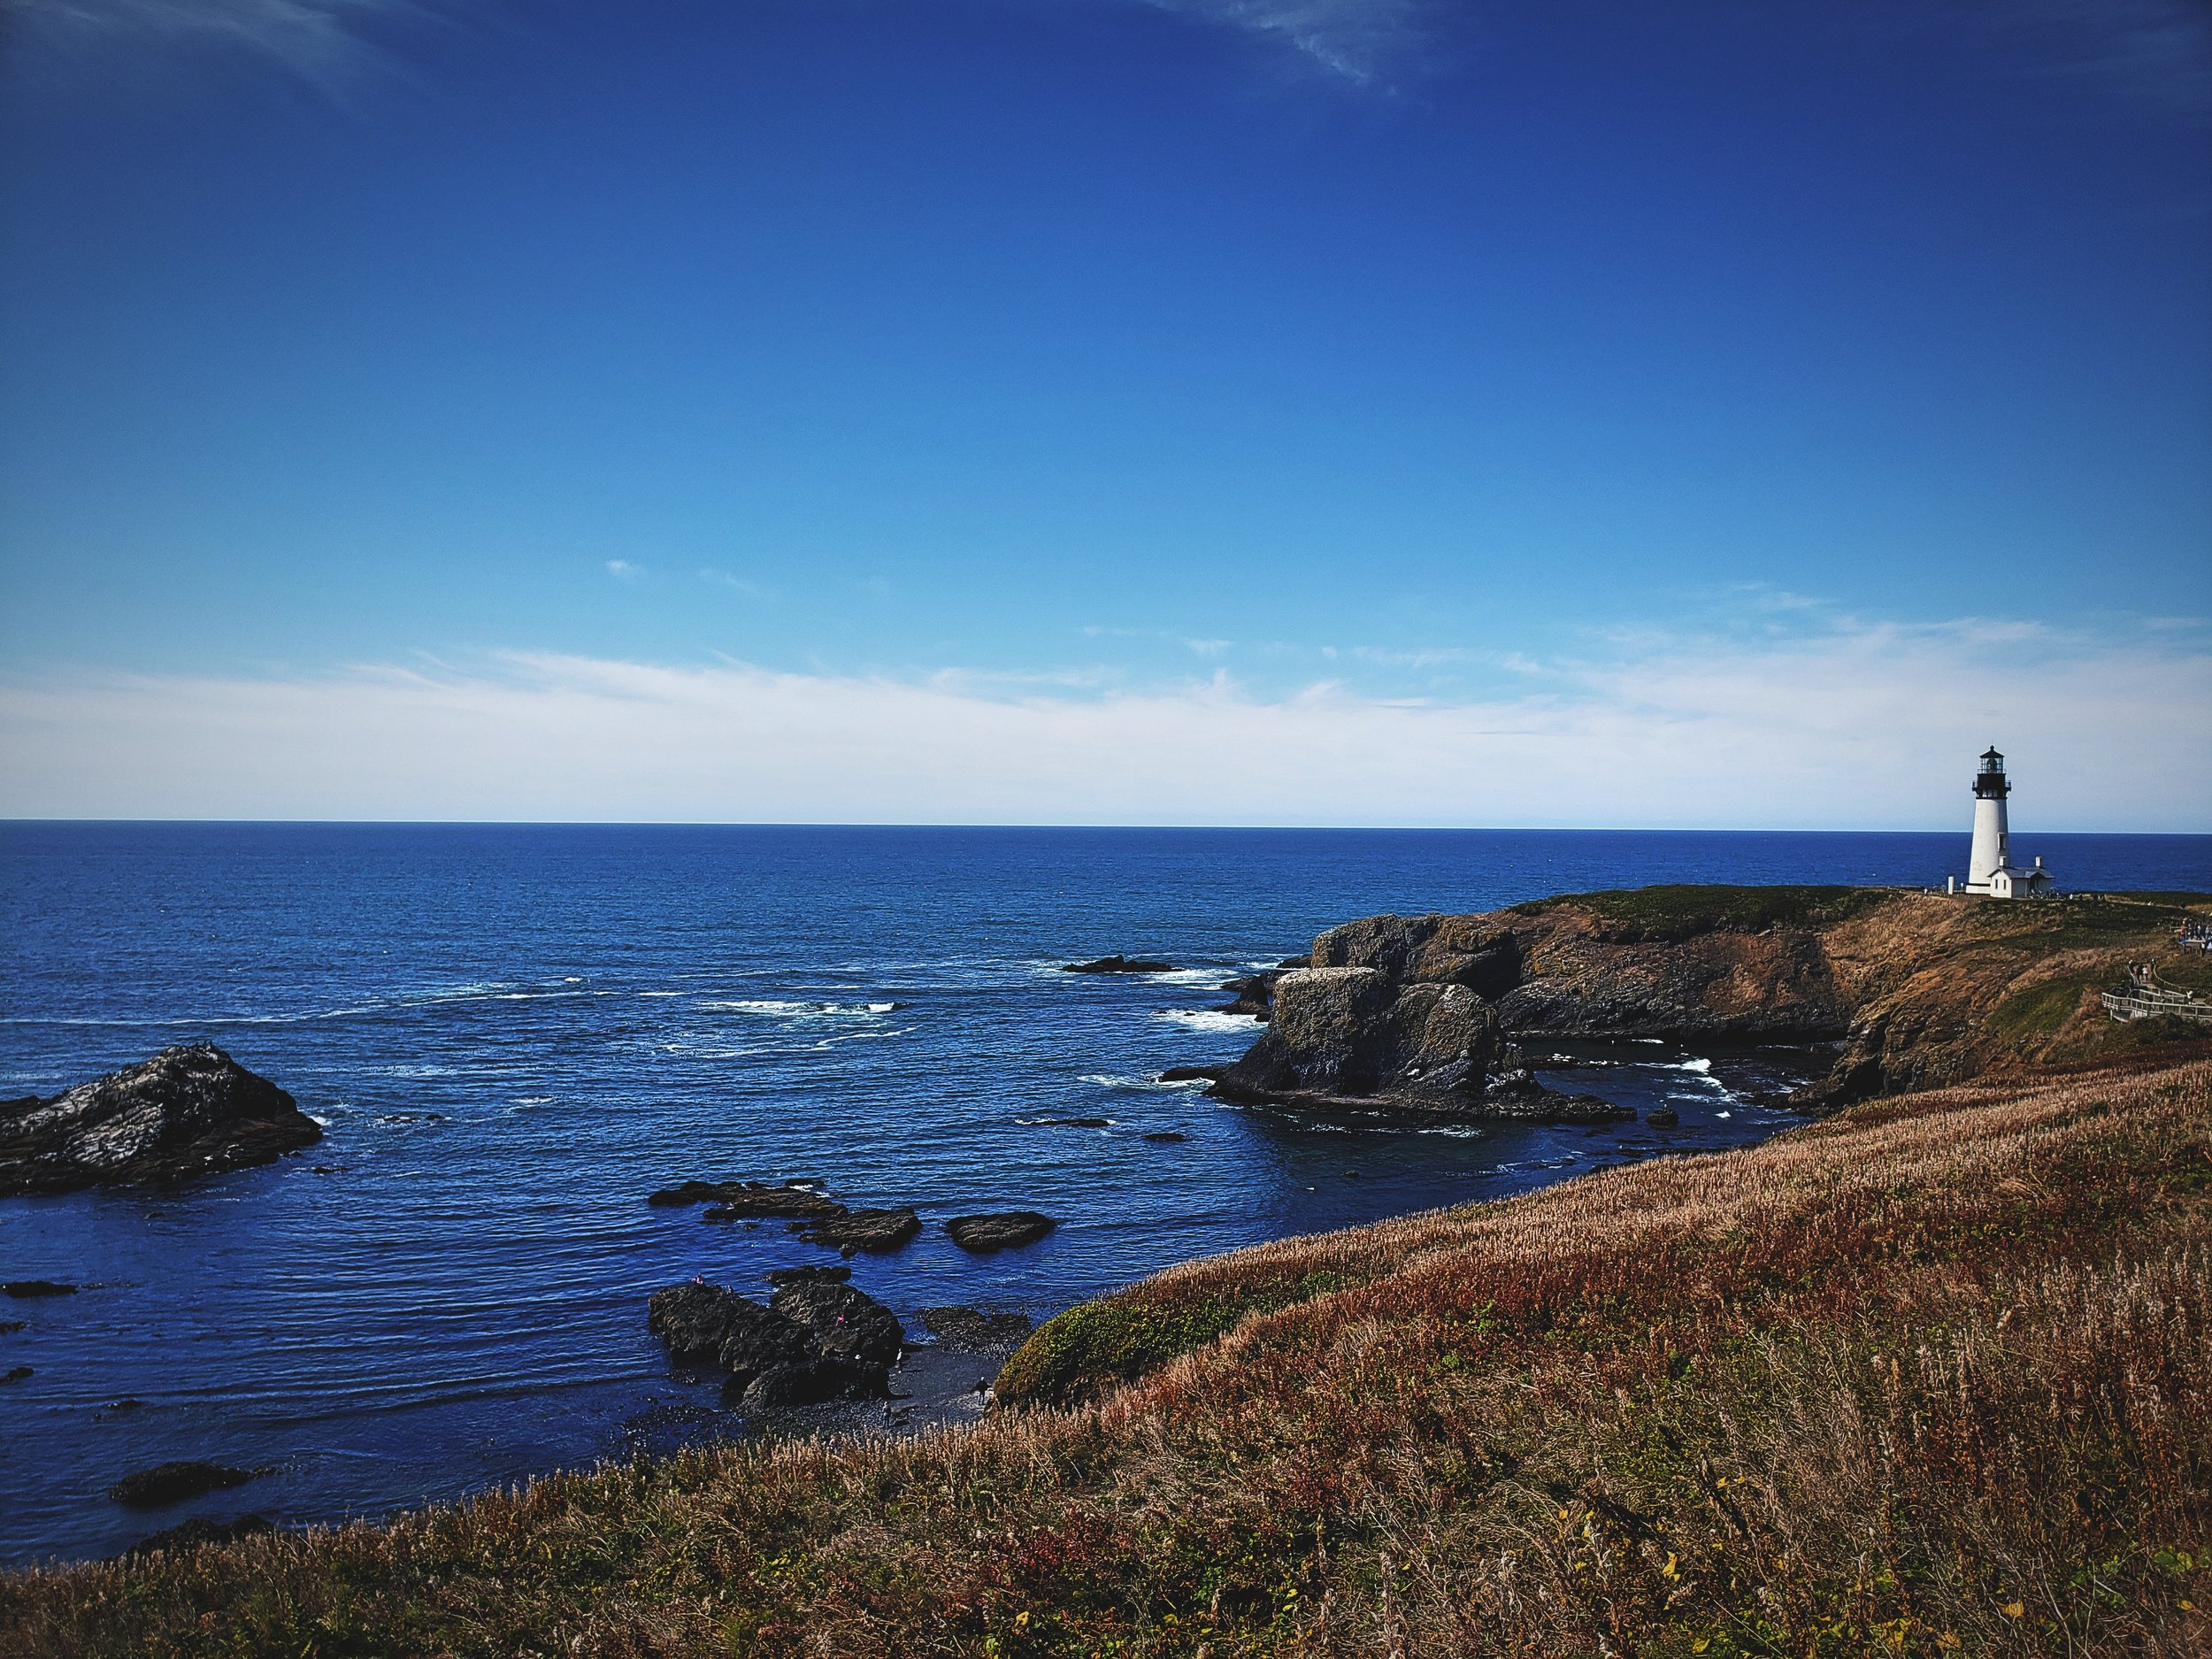 The Yaquina Head Lighthouse is at the tip of the basalt headland that sticks out into the Pacific a mile.